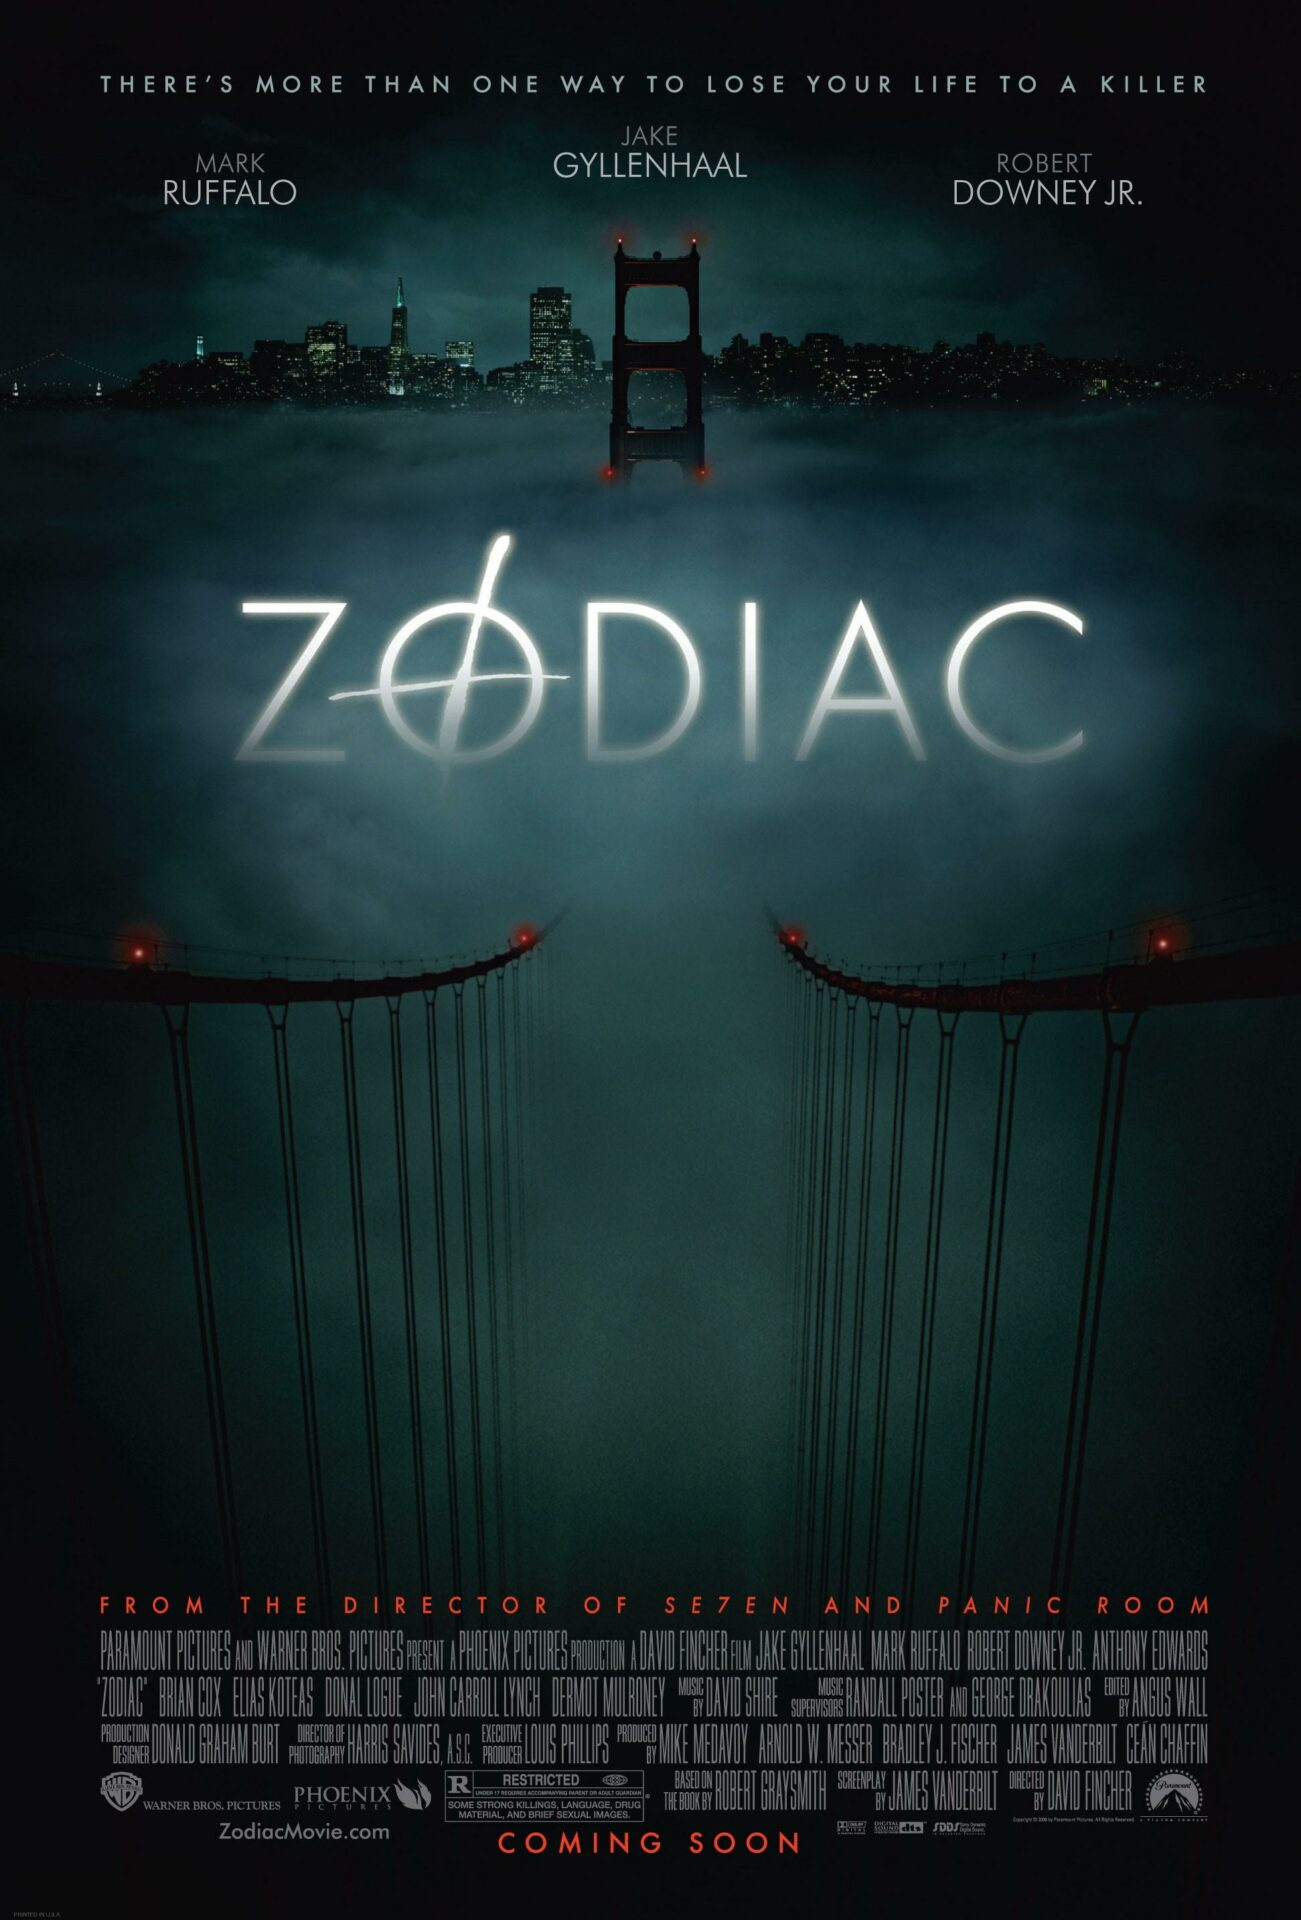 This is an image of the Zodiac movie poster. The background is dark, grey and murky, a bridge disappears into the mist.